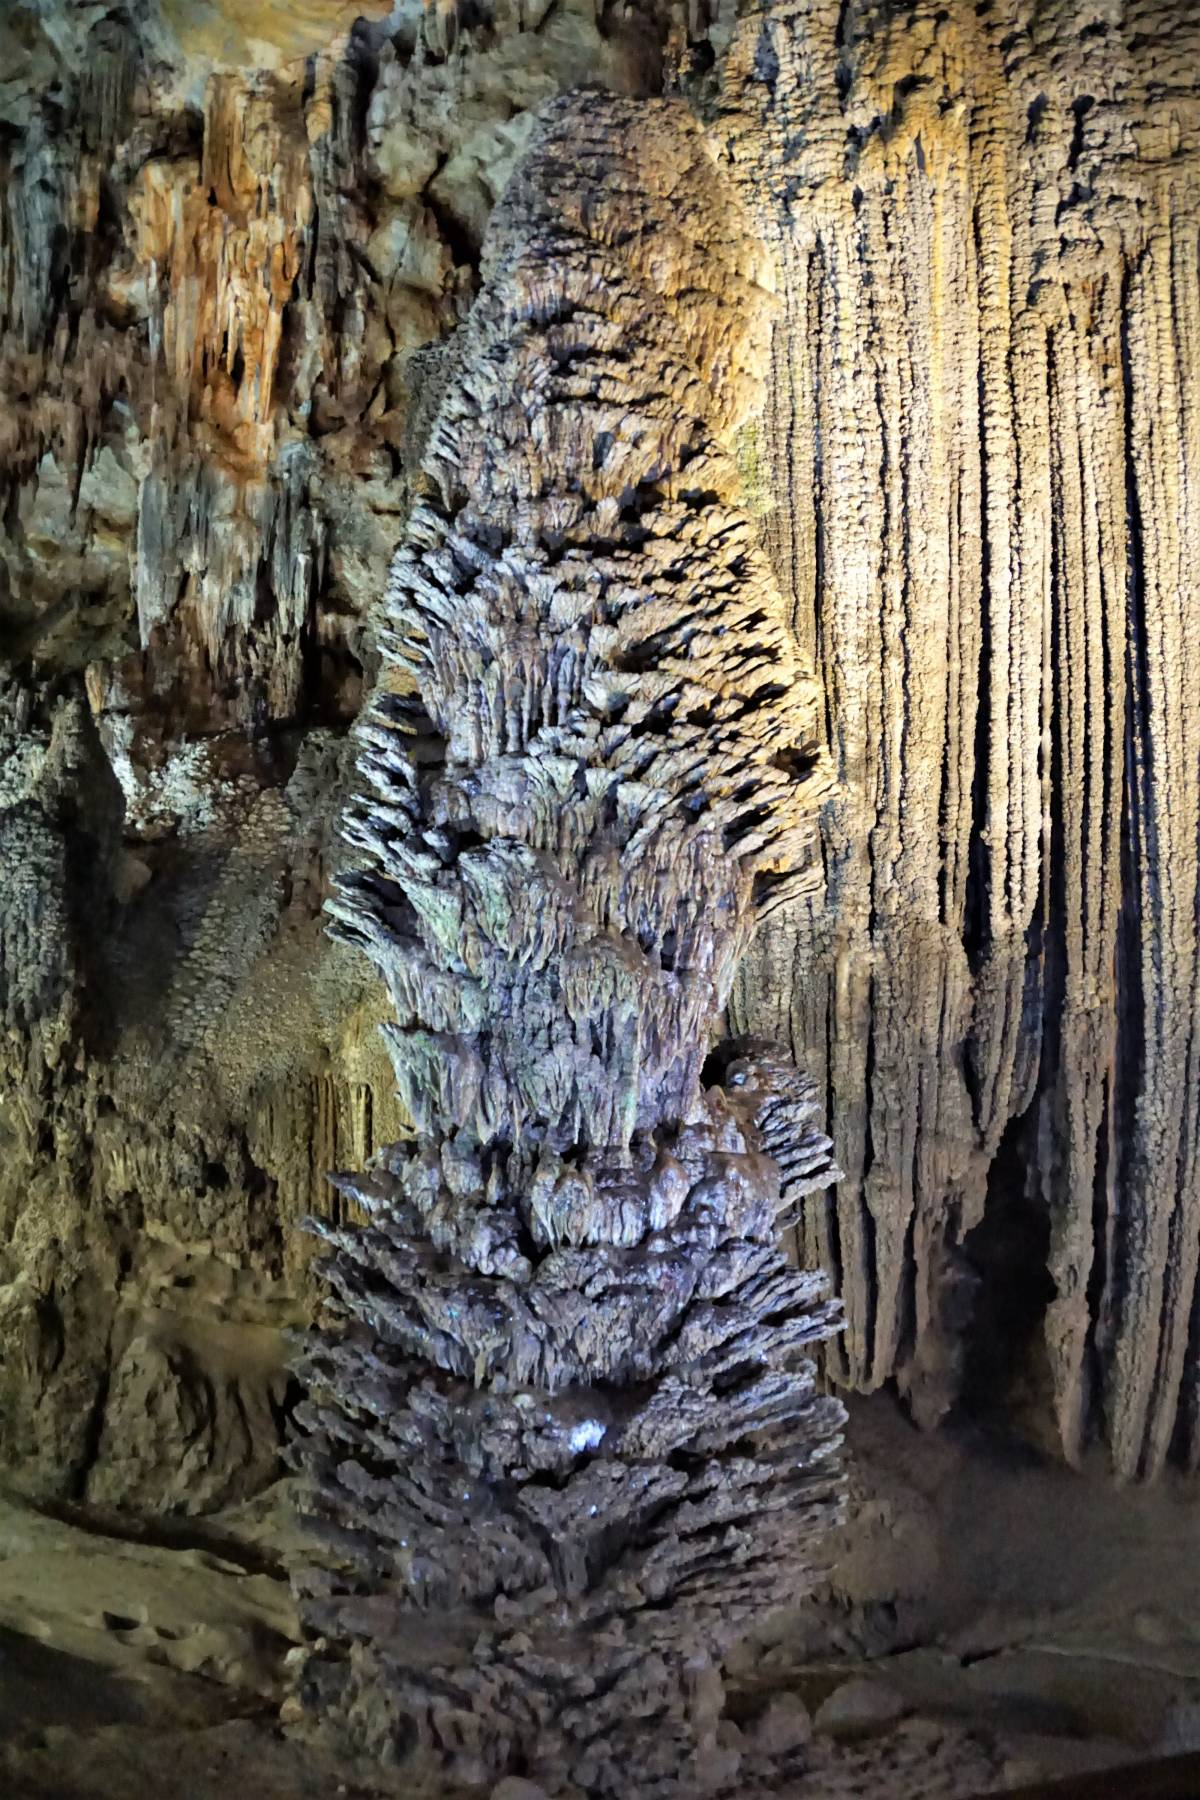 CAVES OF CENTRAL VIETNAM in QUANG BINH